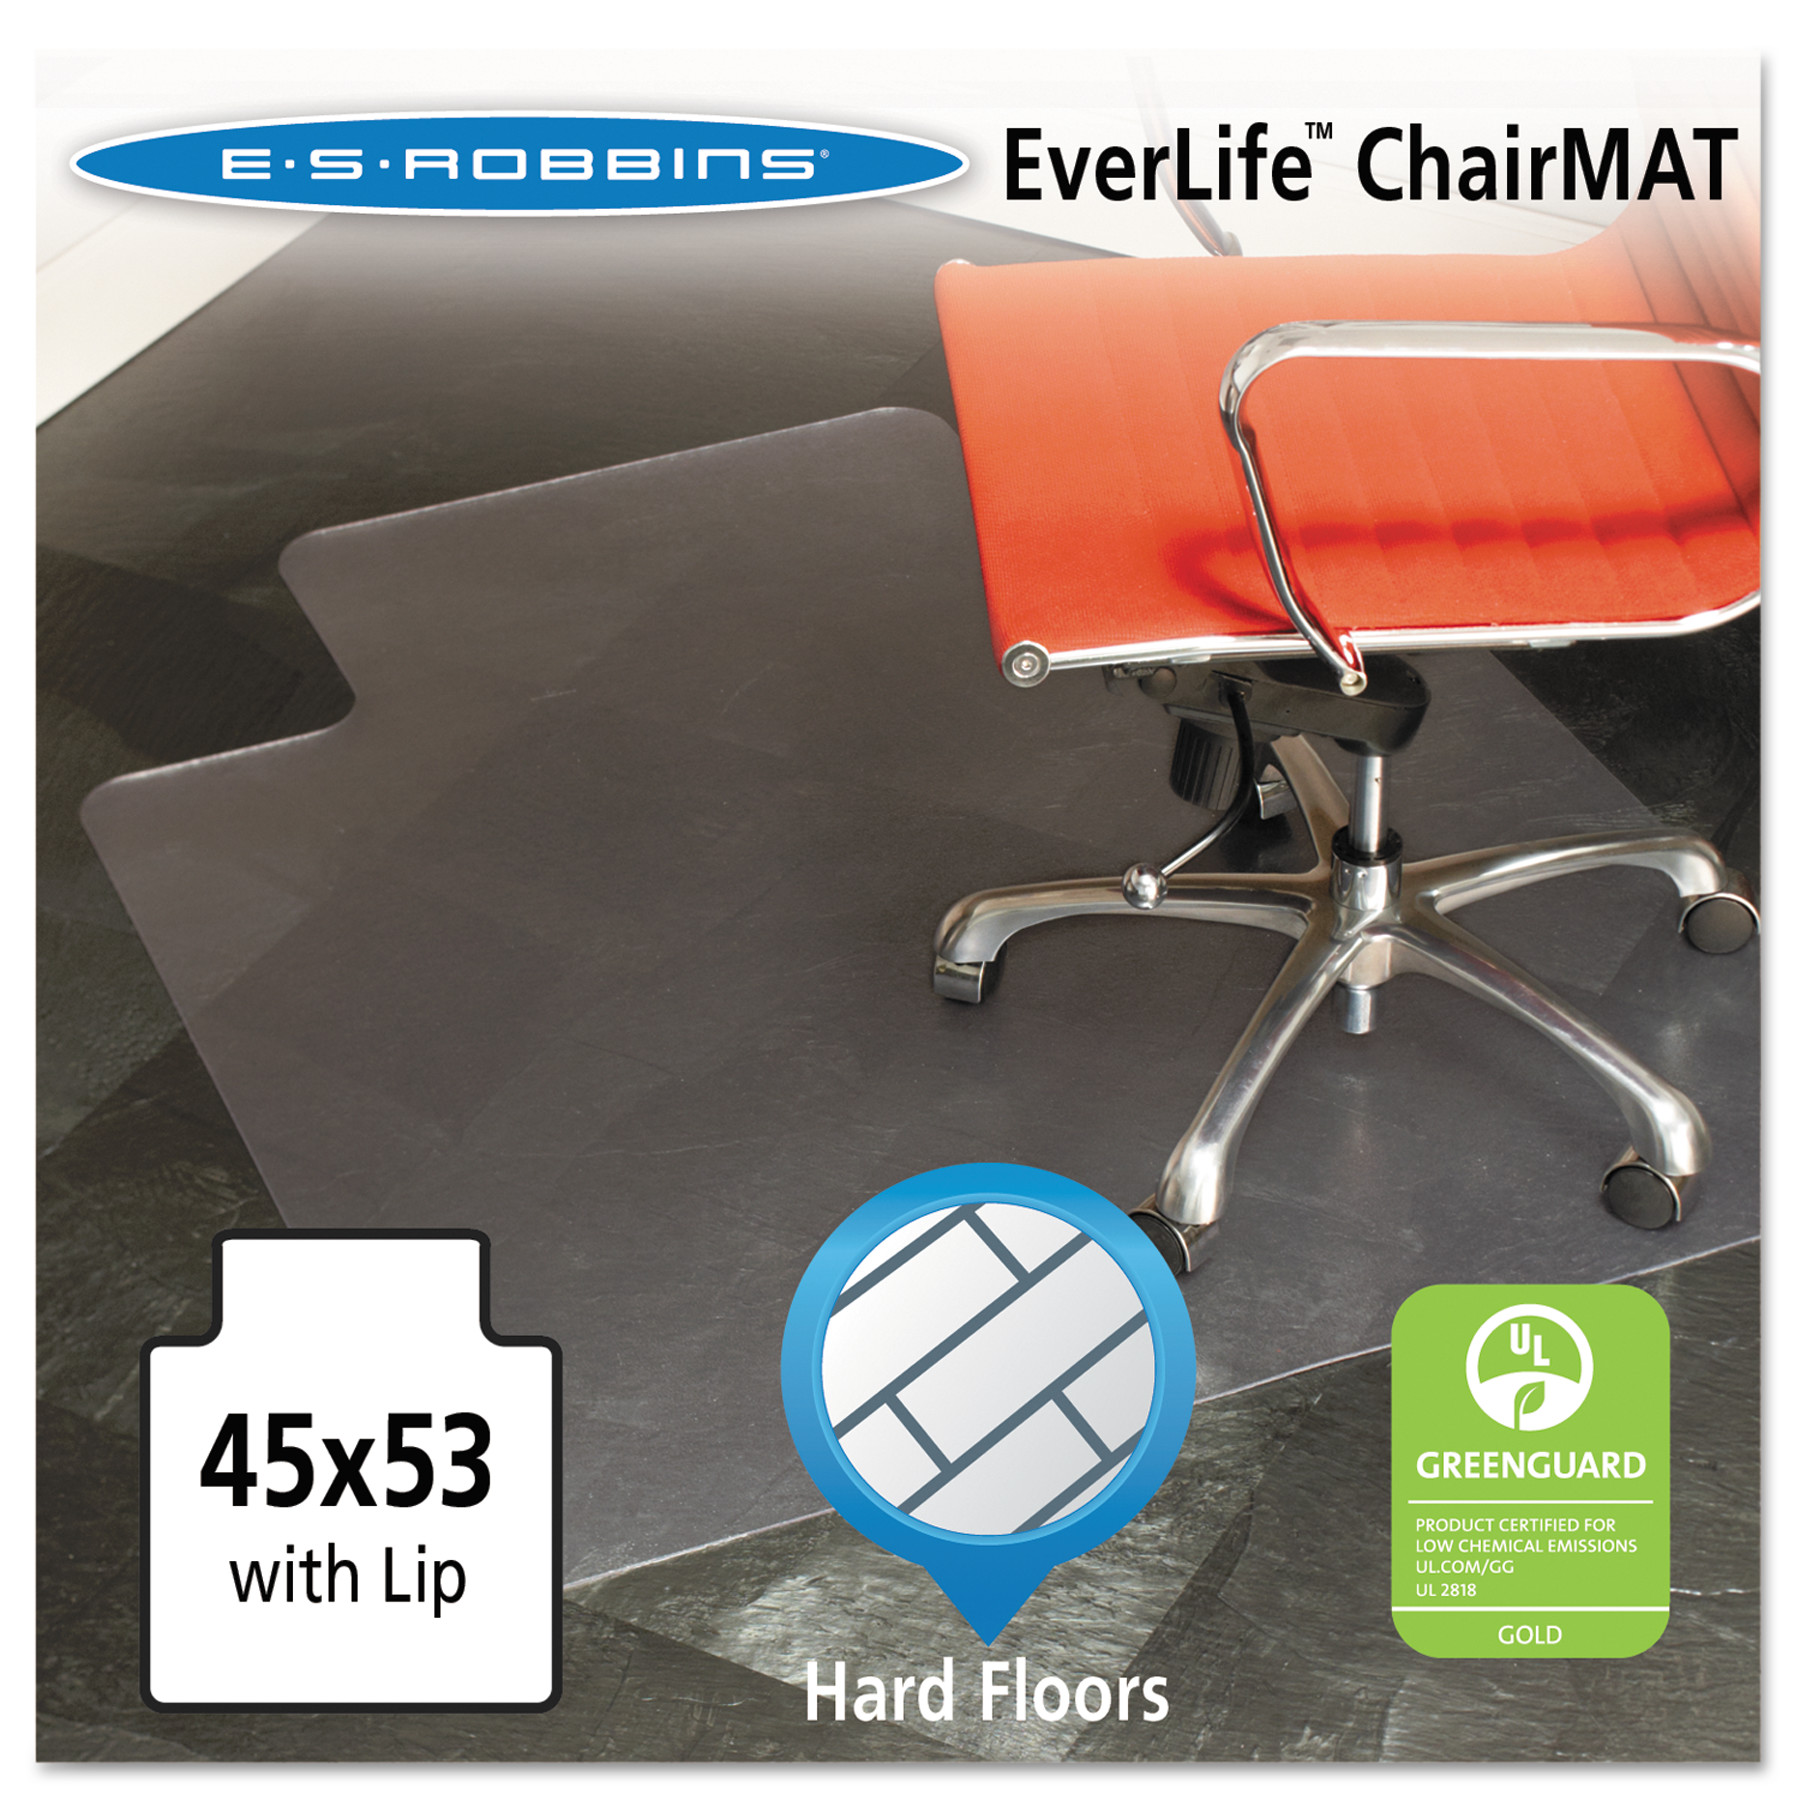 es robbins 45x53 lip chair mat multitask series for hard floors heavier - Chair Mat